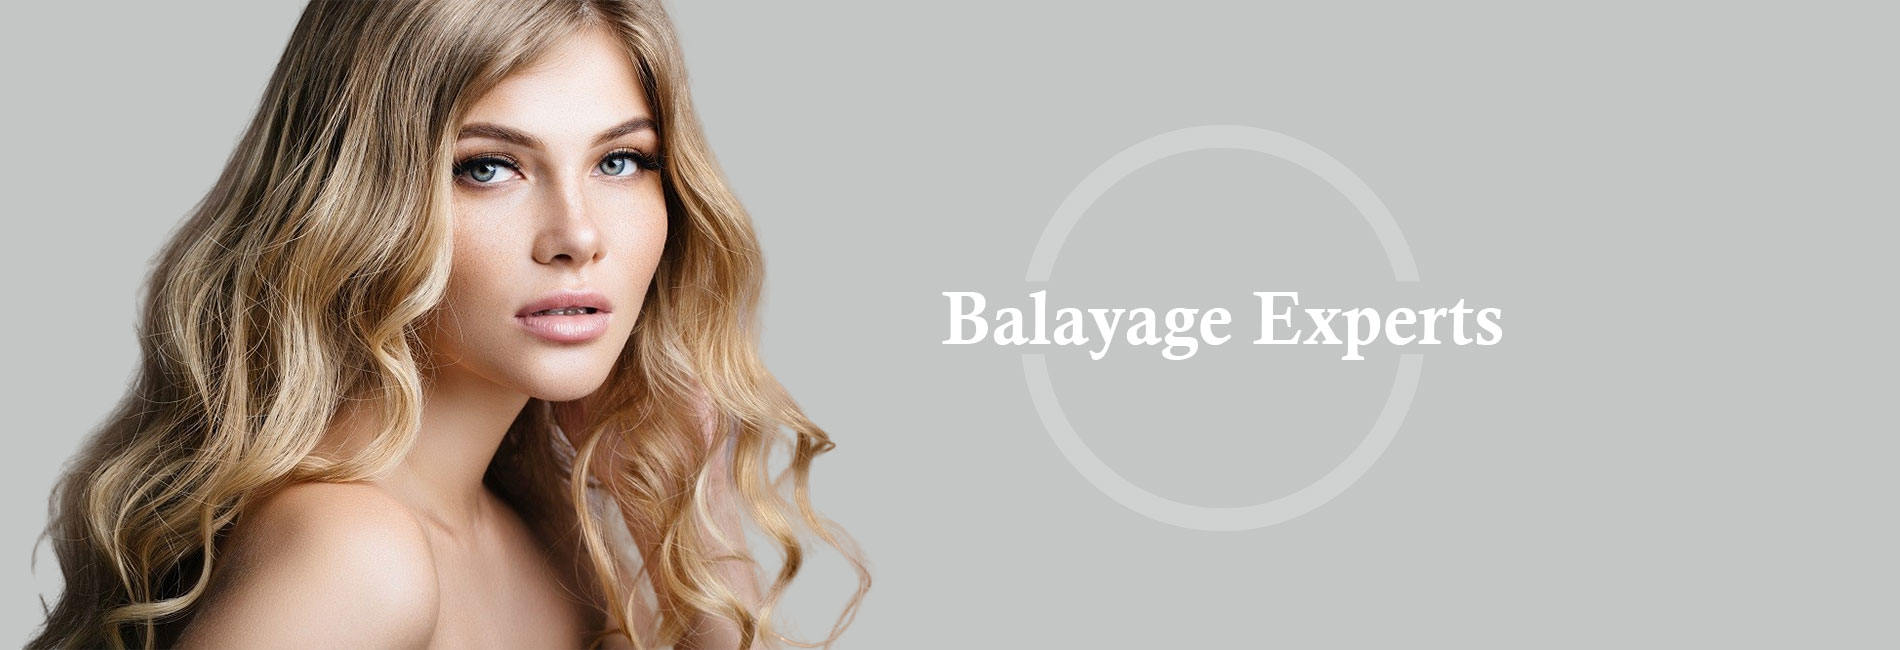 balayage My Hair Guru, Hair Colour, Top Hair Salon in Paisley